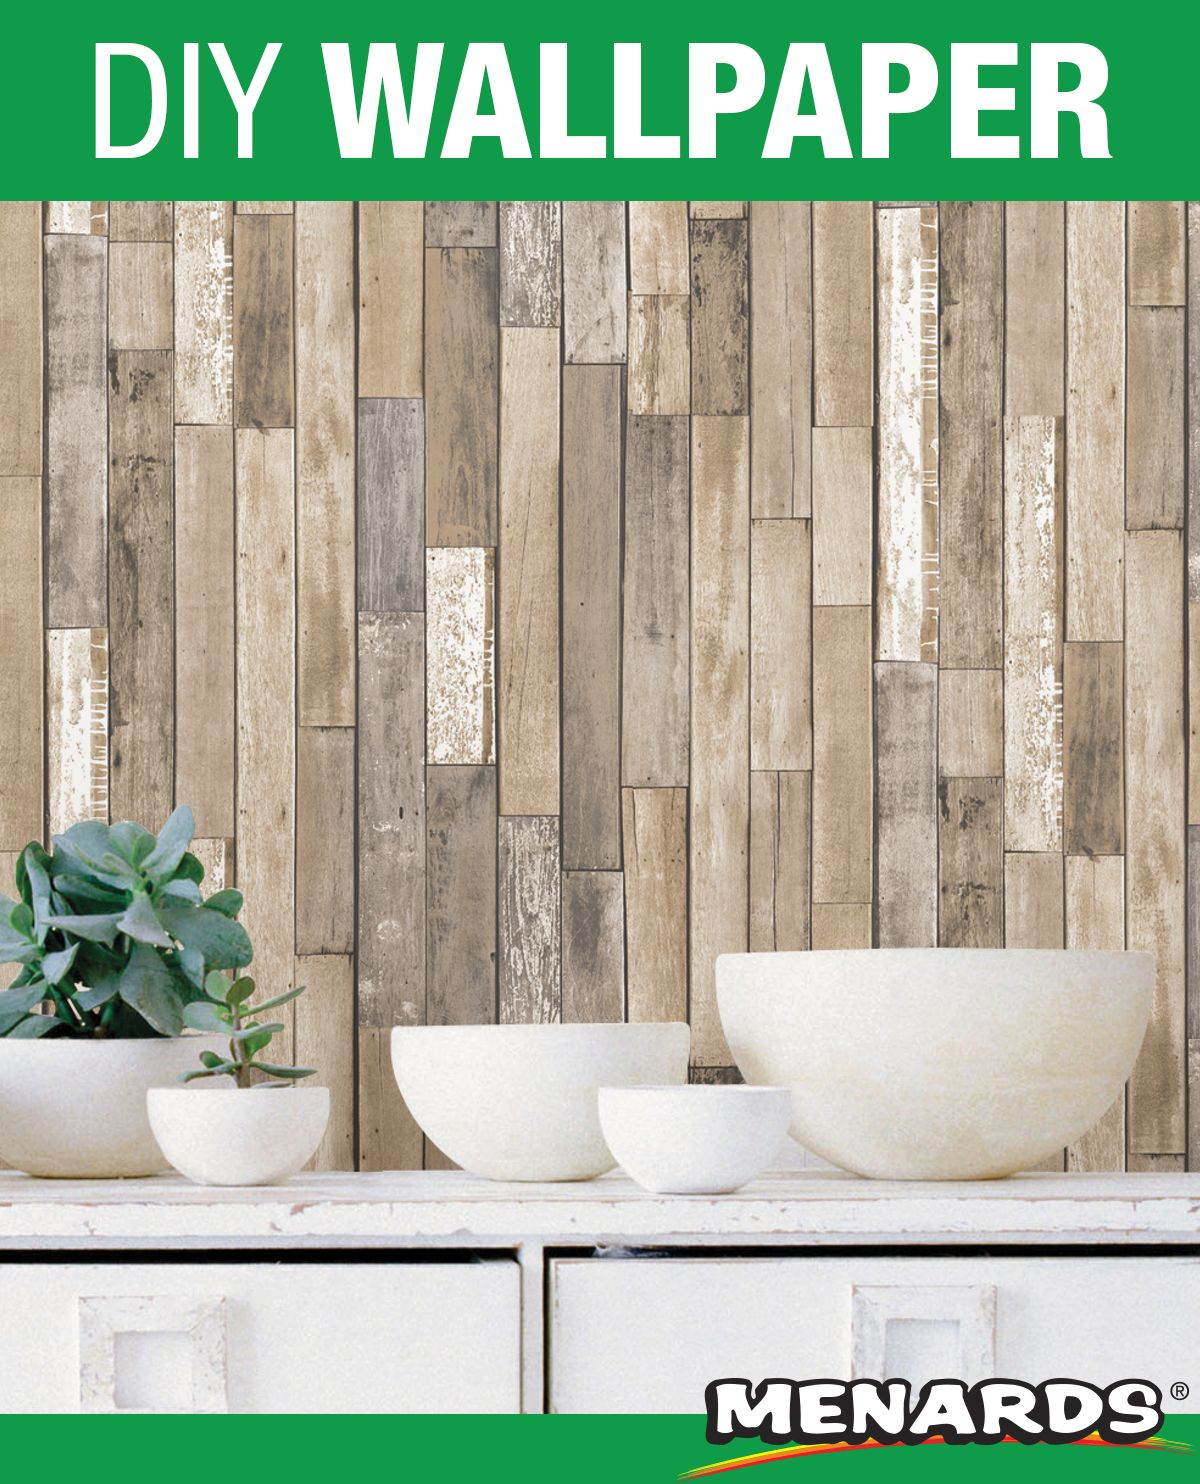 Get The Look Of Weathered Plank With This Wallpaper Its Light Natural Look Will Brighten Up Your Space Espe Diy Wallpaper Peel And Stick Wallpaper Wallpaper